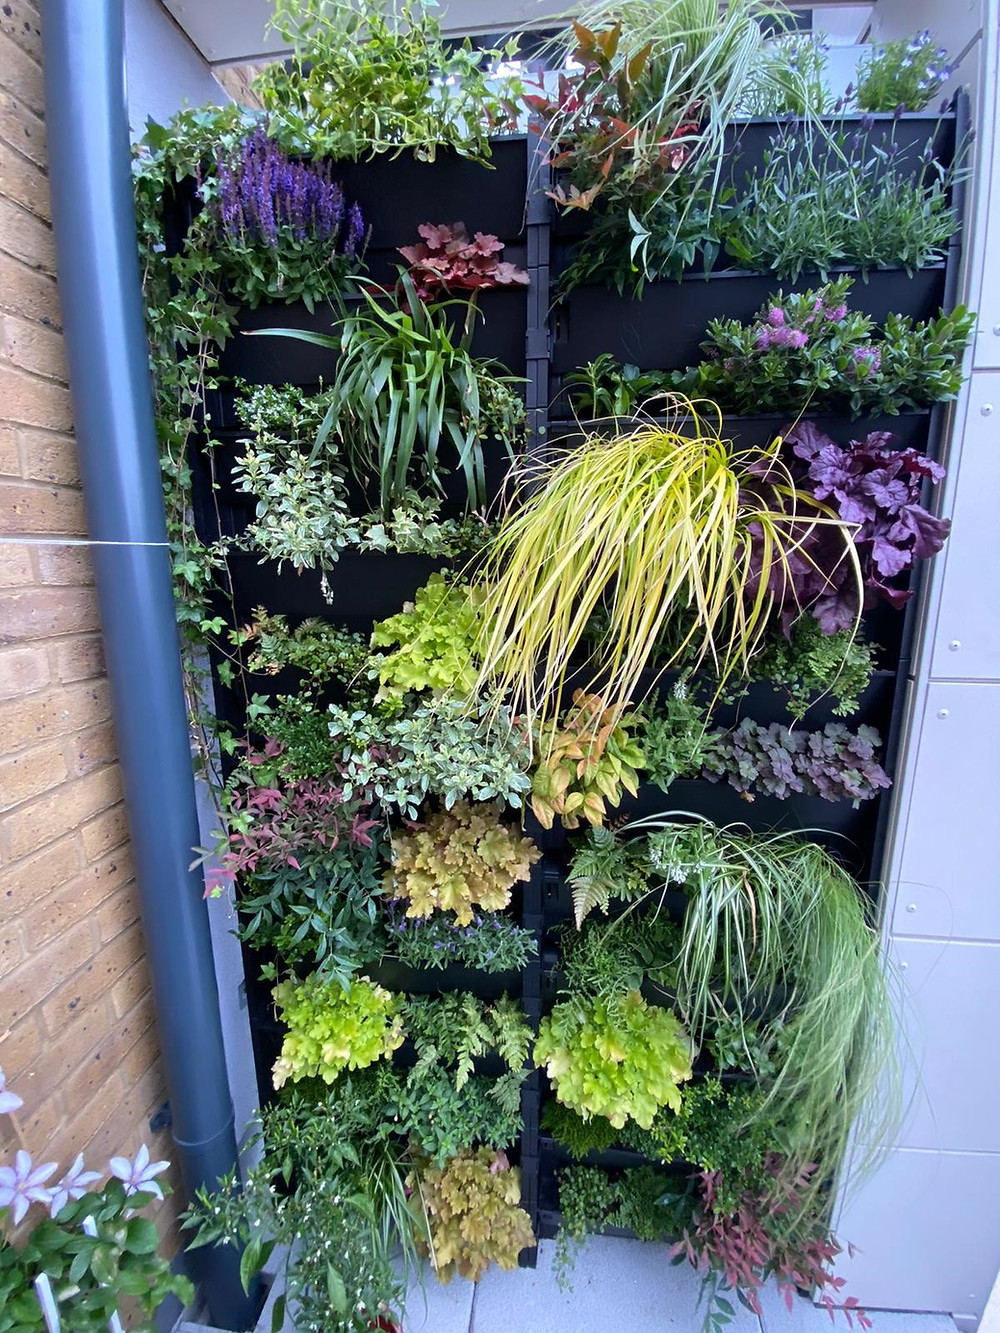 Grow vertically to maximise the growing space in your balcony garden